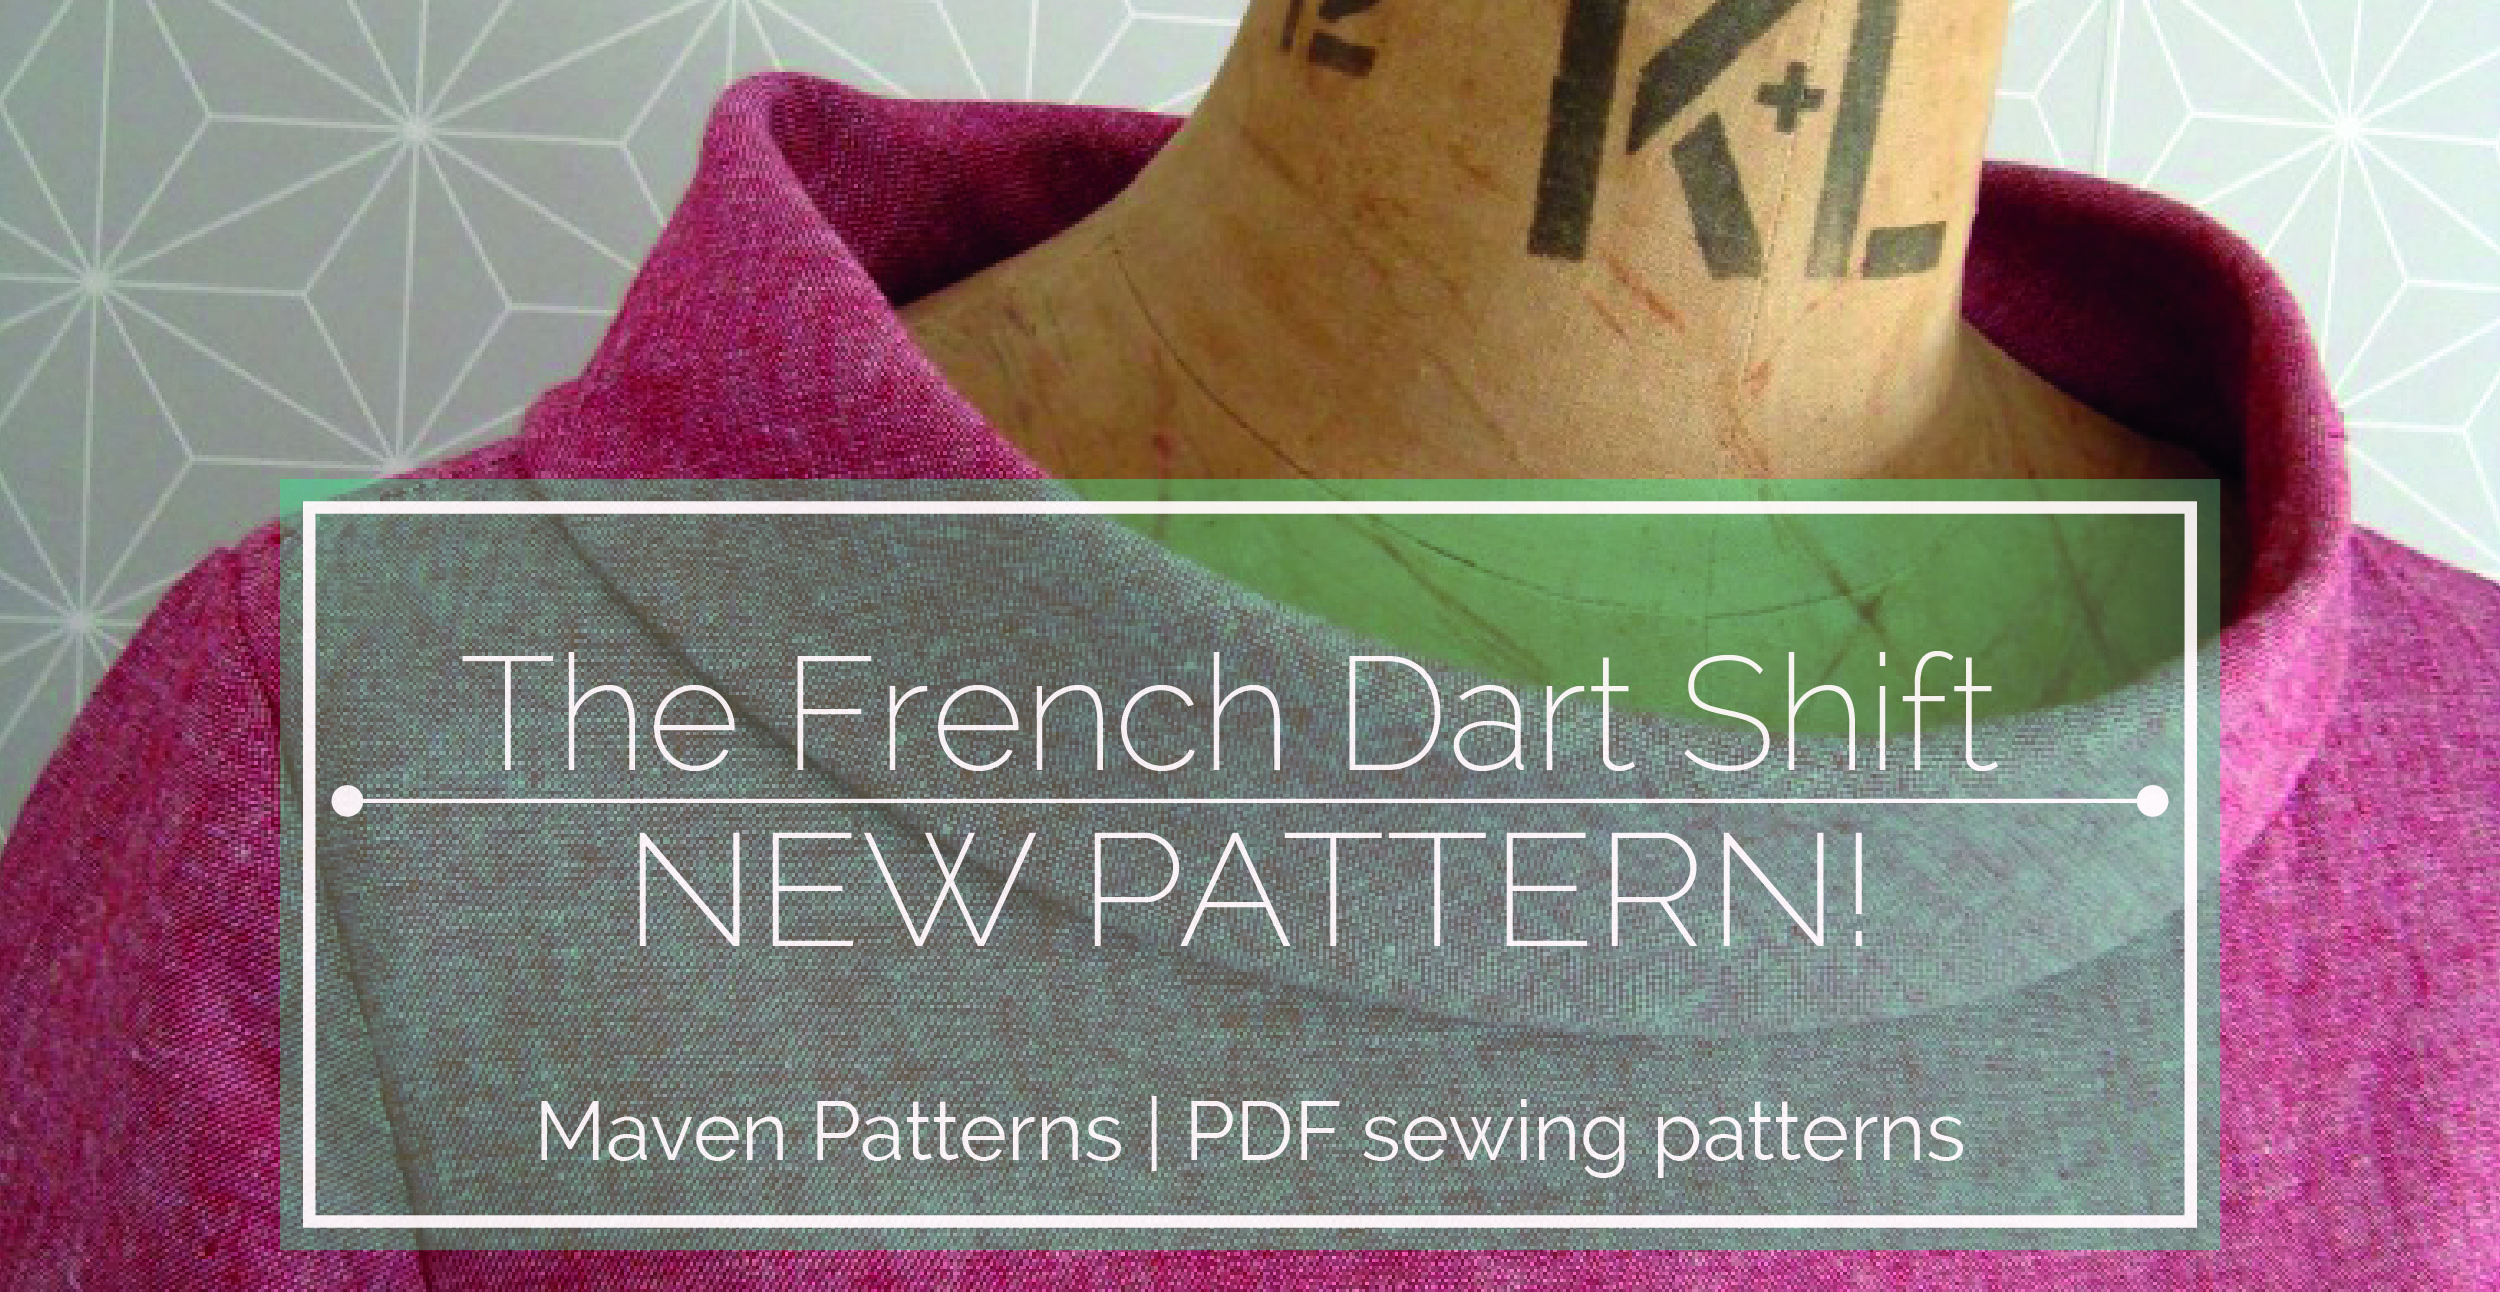 MAVEN PATTERNS_PDF SEWING PATTERNS